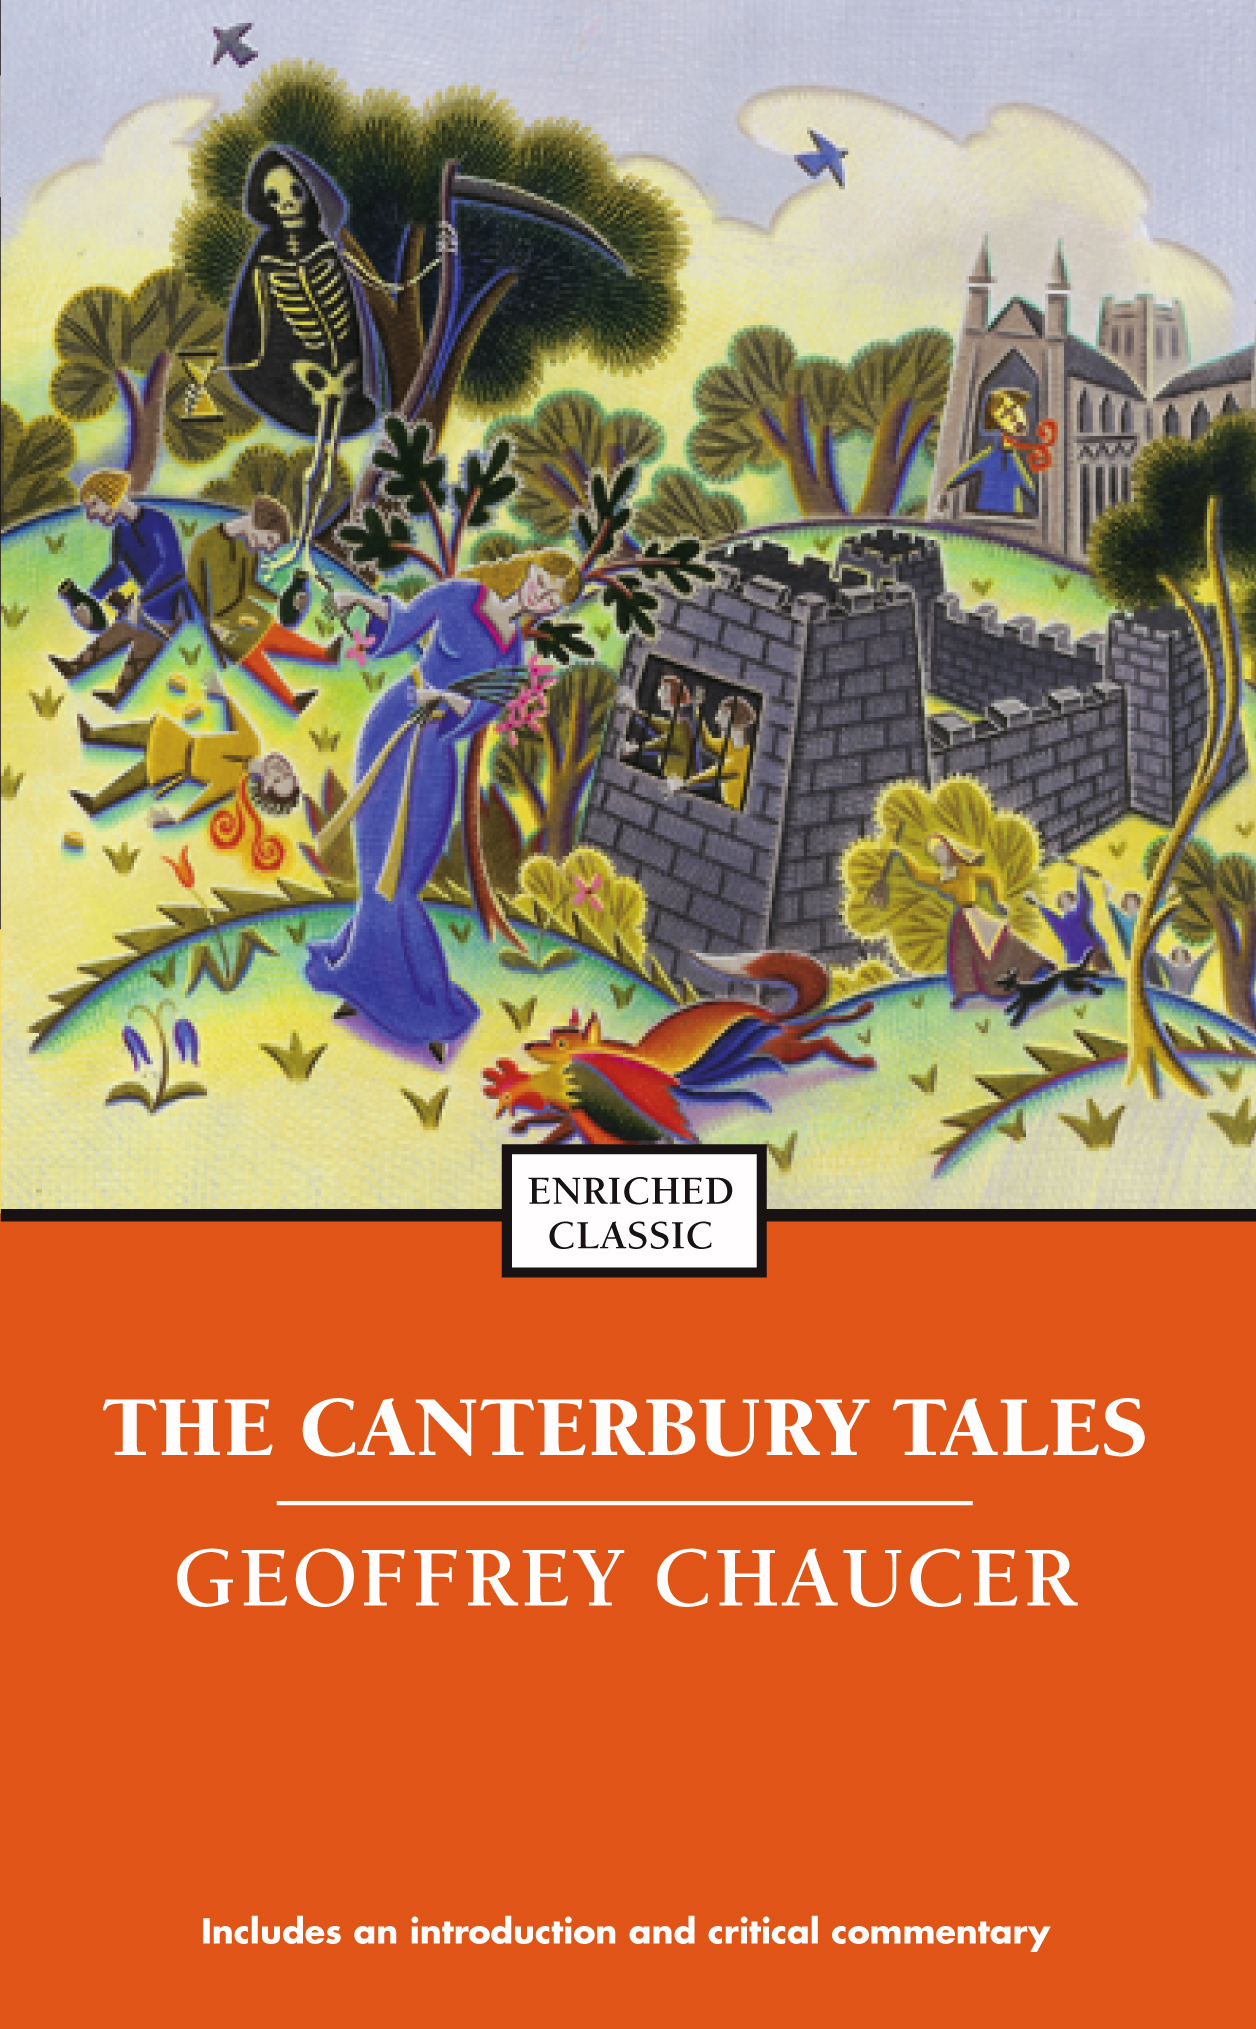 canterbury tales by geoffrey chaucer entertaining Free essay: the canterbury tales, - biblical allusions in the shipman's tale there is no doubting chaucer's mastery at paroemia that his adaptations of his.